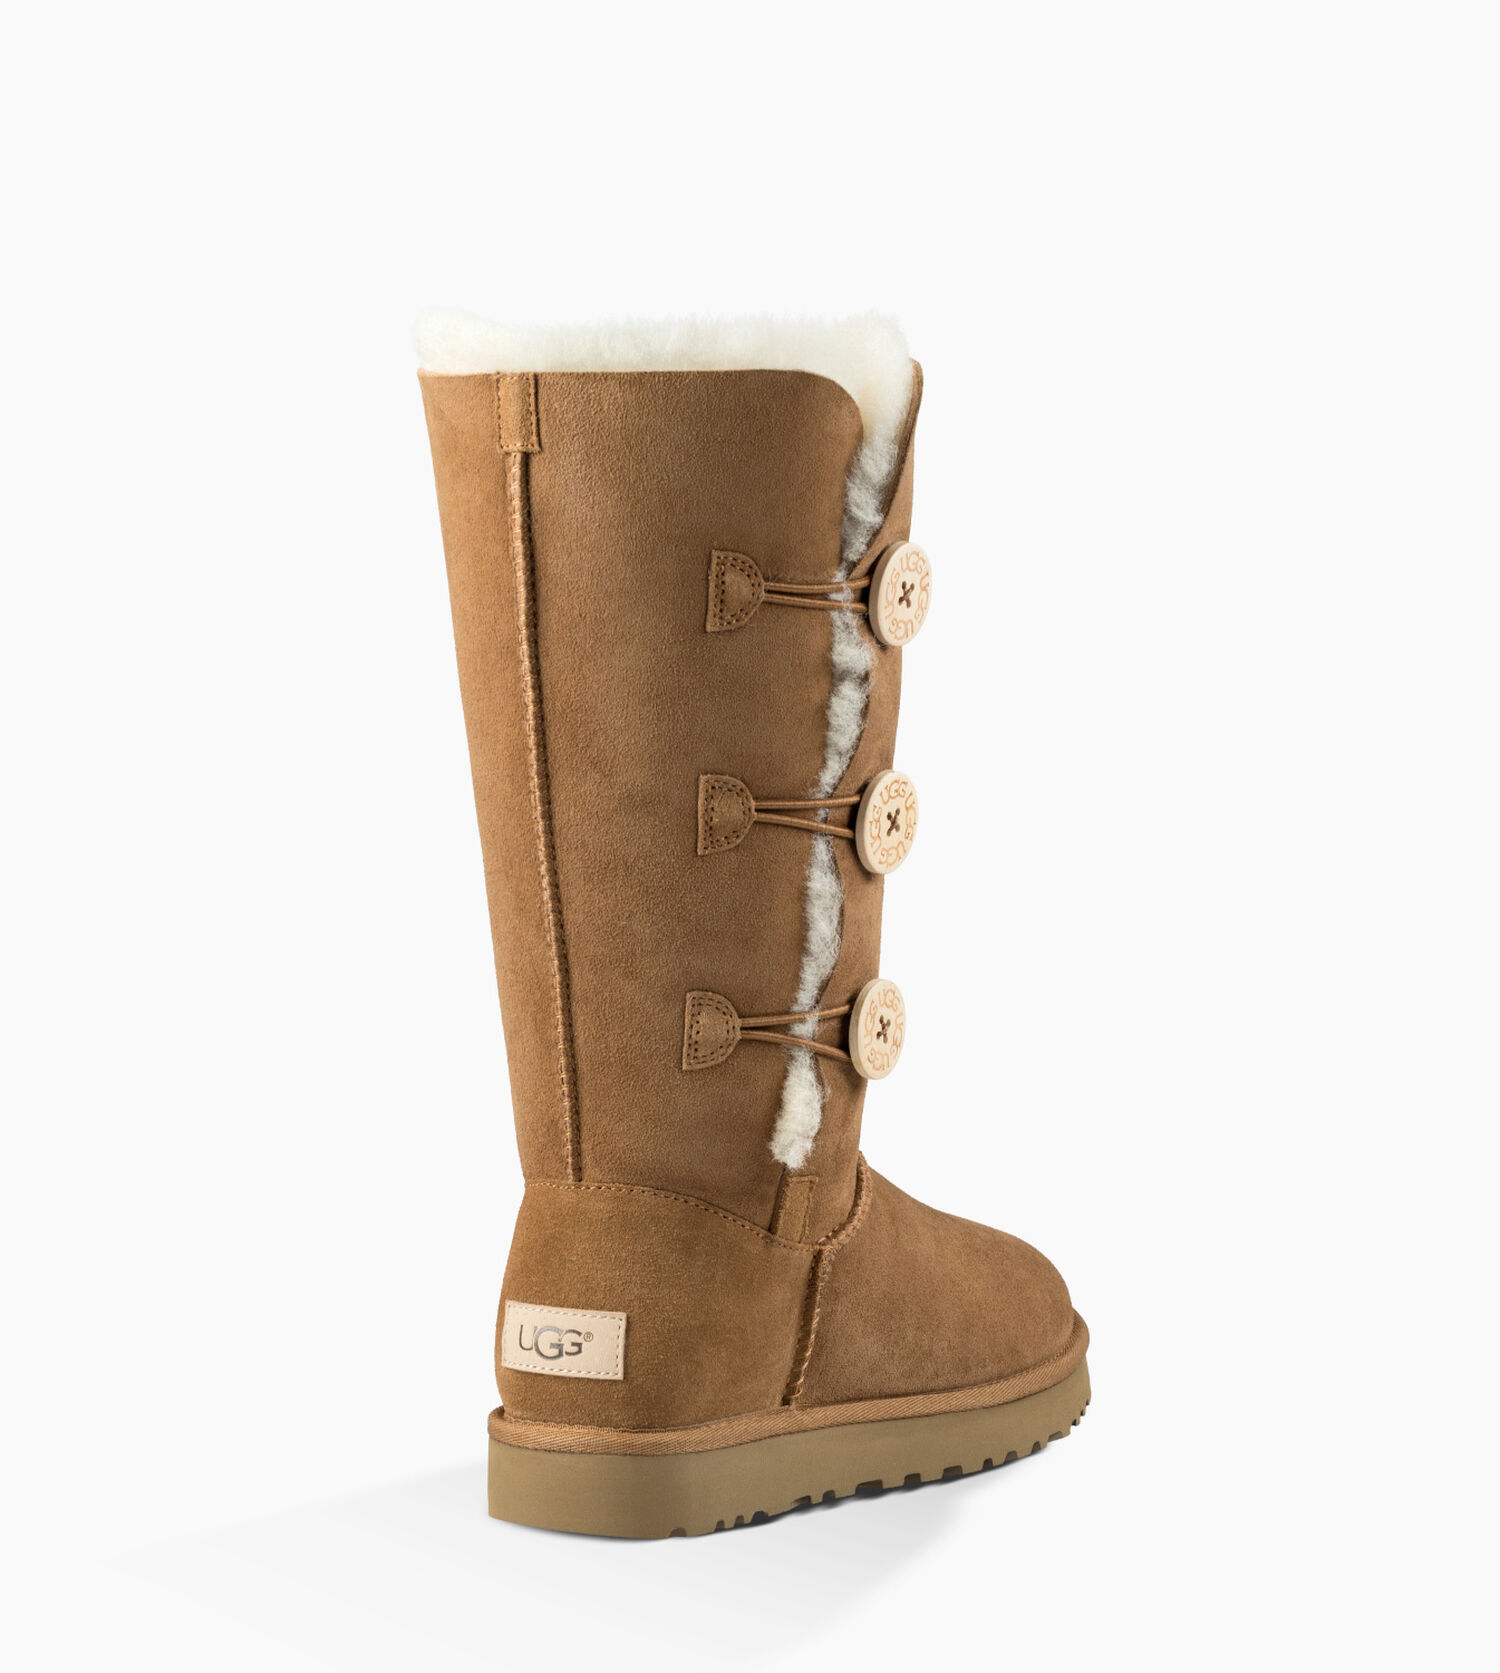 5c6378e9f63 Women's Share this product Bailey Button Triplet II Boot